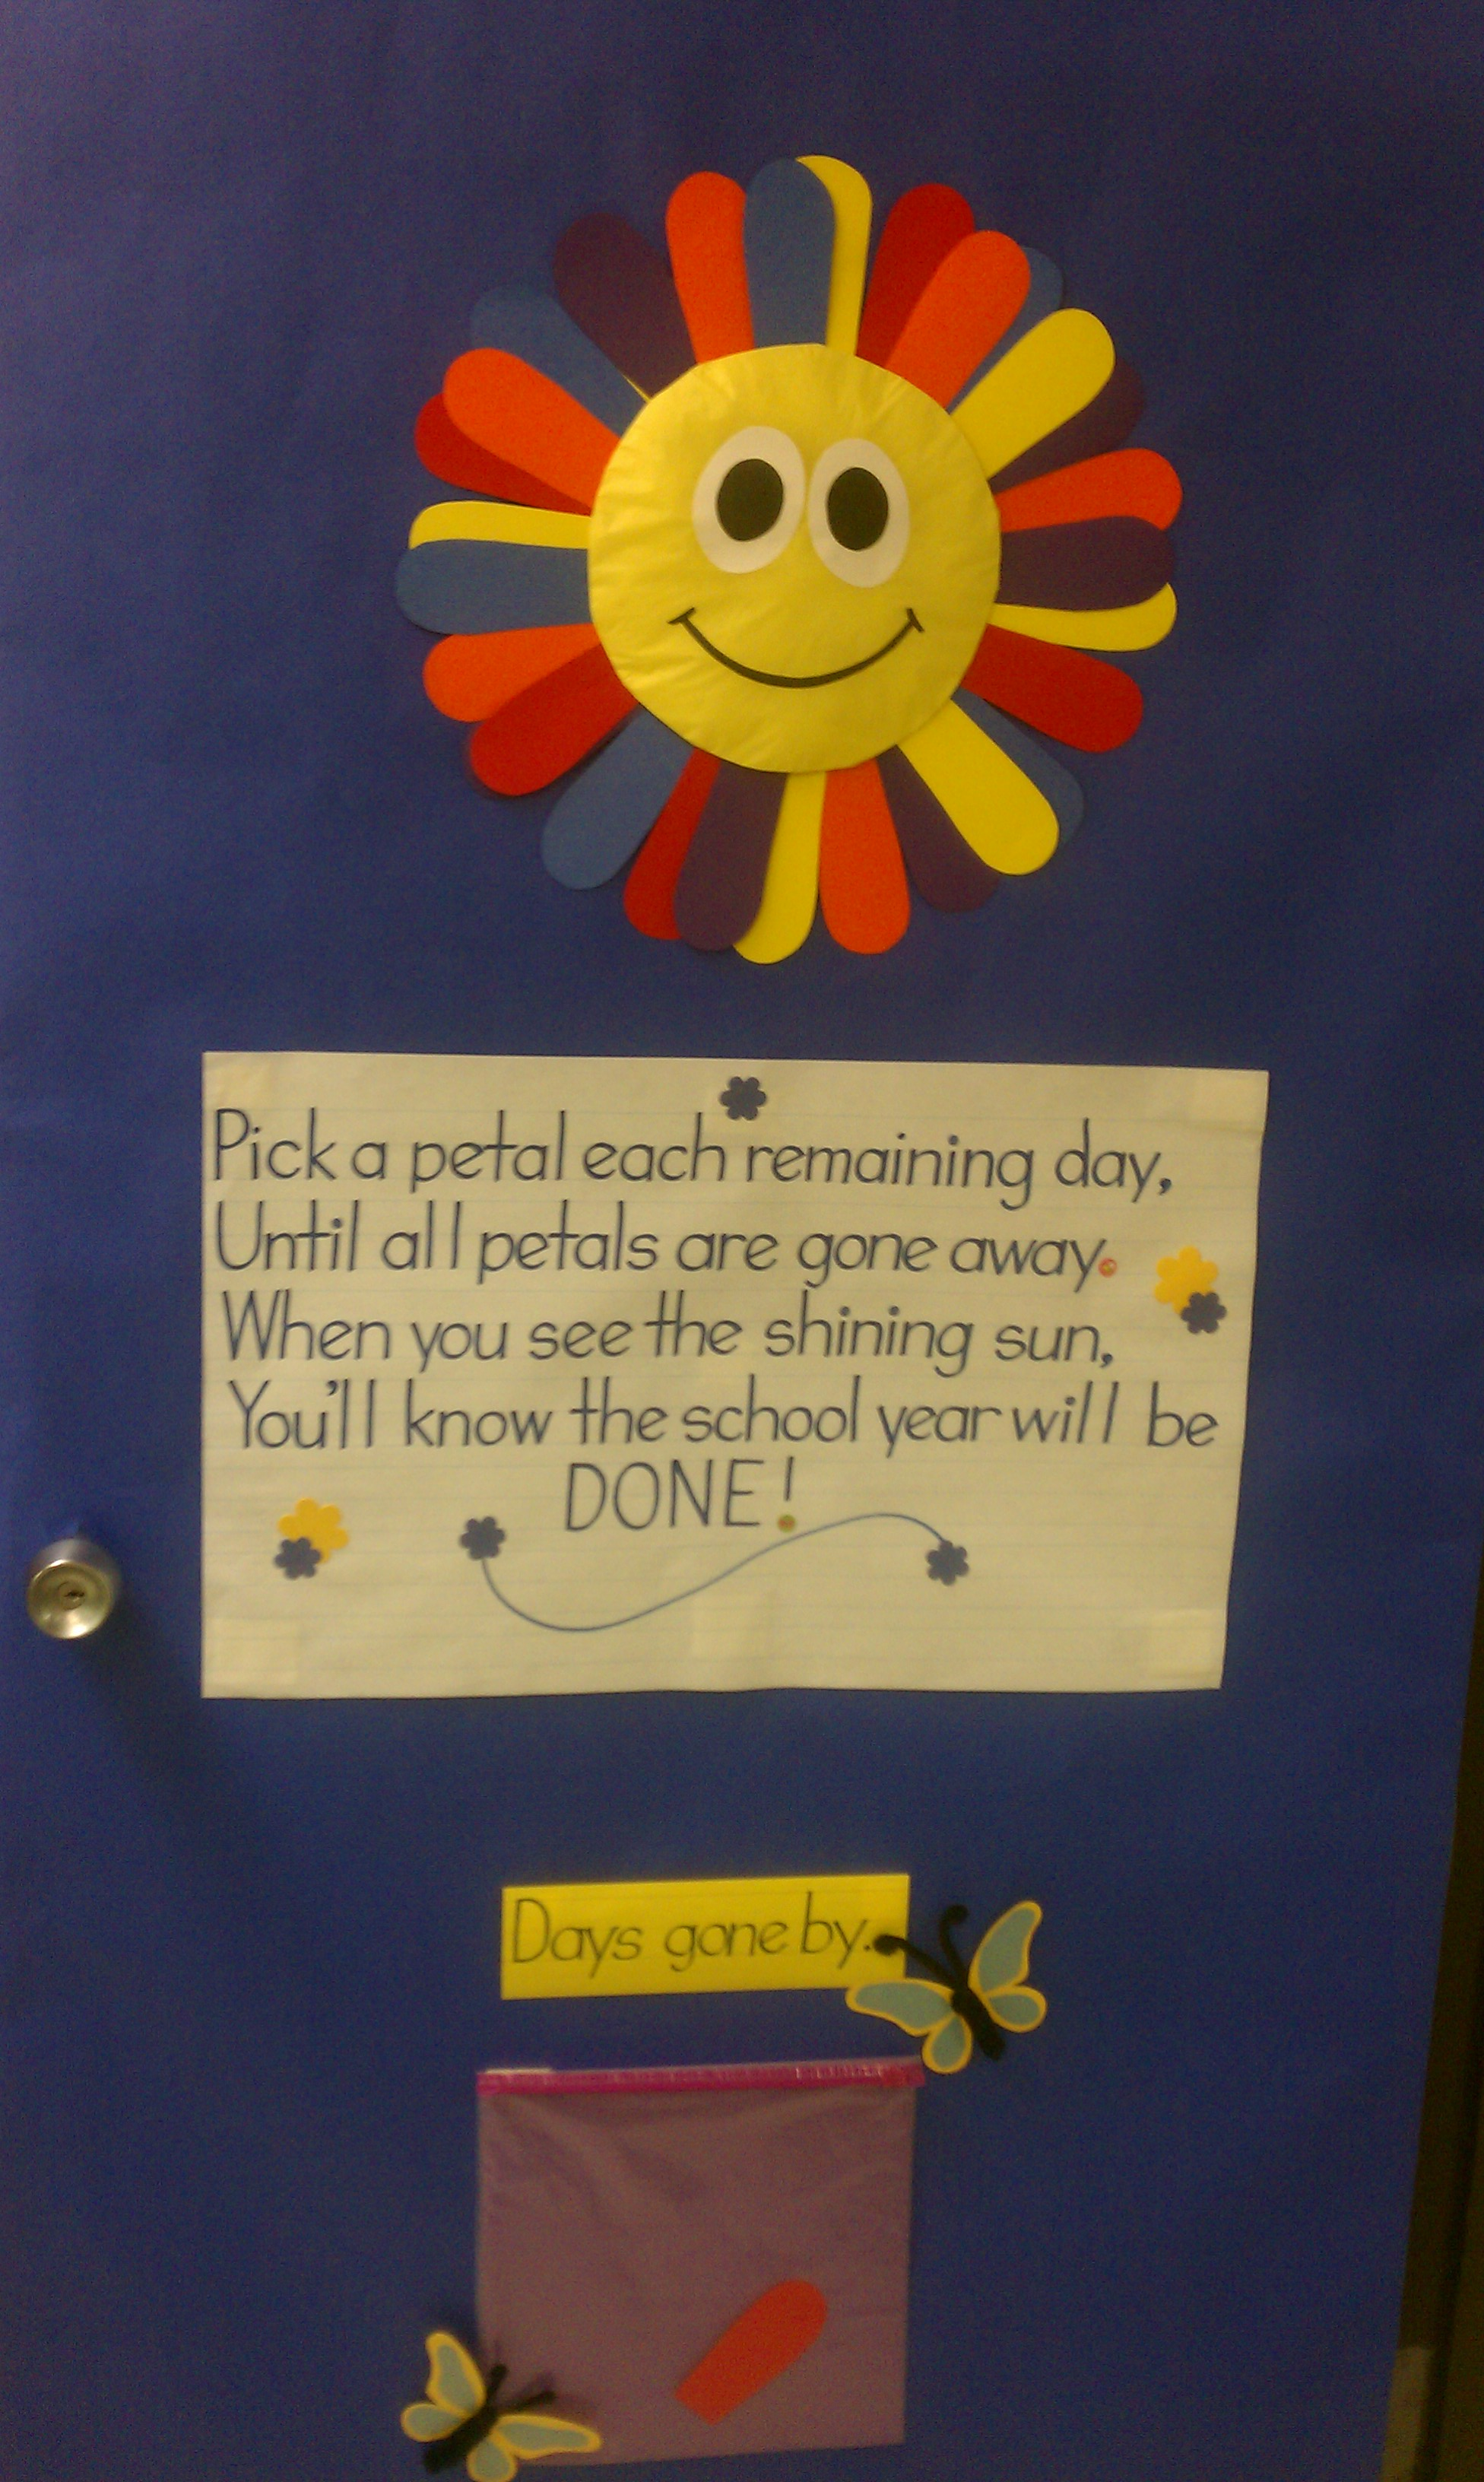 Very Cute Poem To Count Down The End Of The School Year